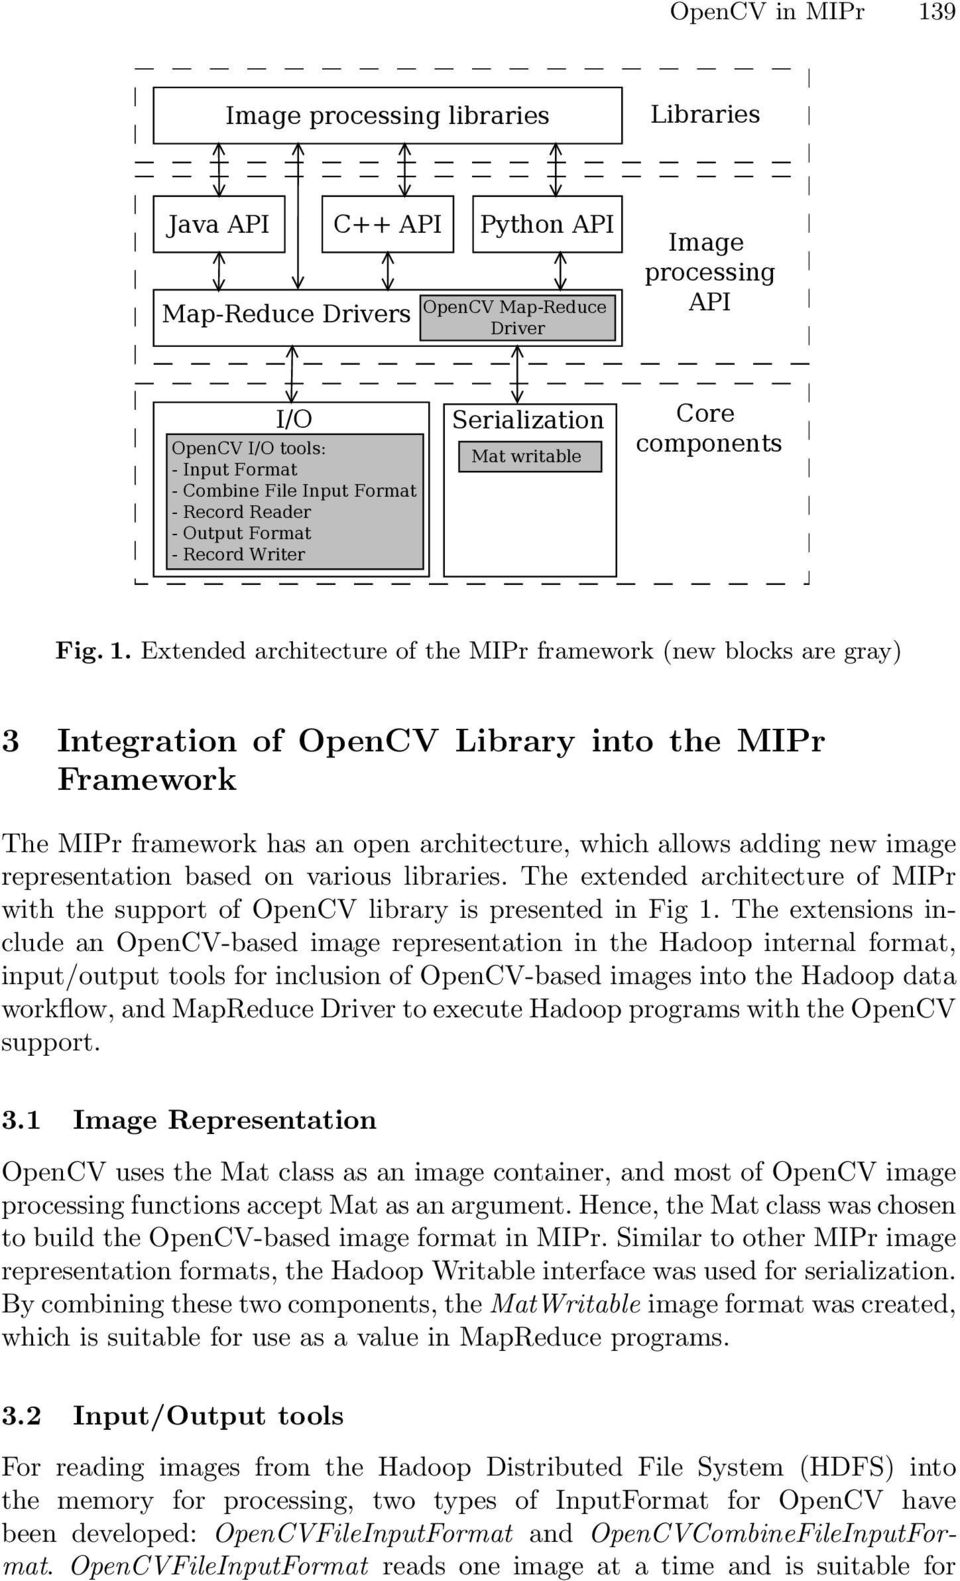 Extended architecture of the MIPr framework (new blocks are gray) 3 Integration of OpenCV Library into the MIPr Framework The MIPr framework has an open architecture, which allows adding new image